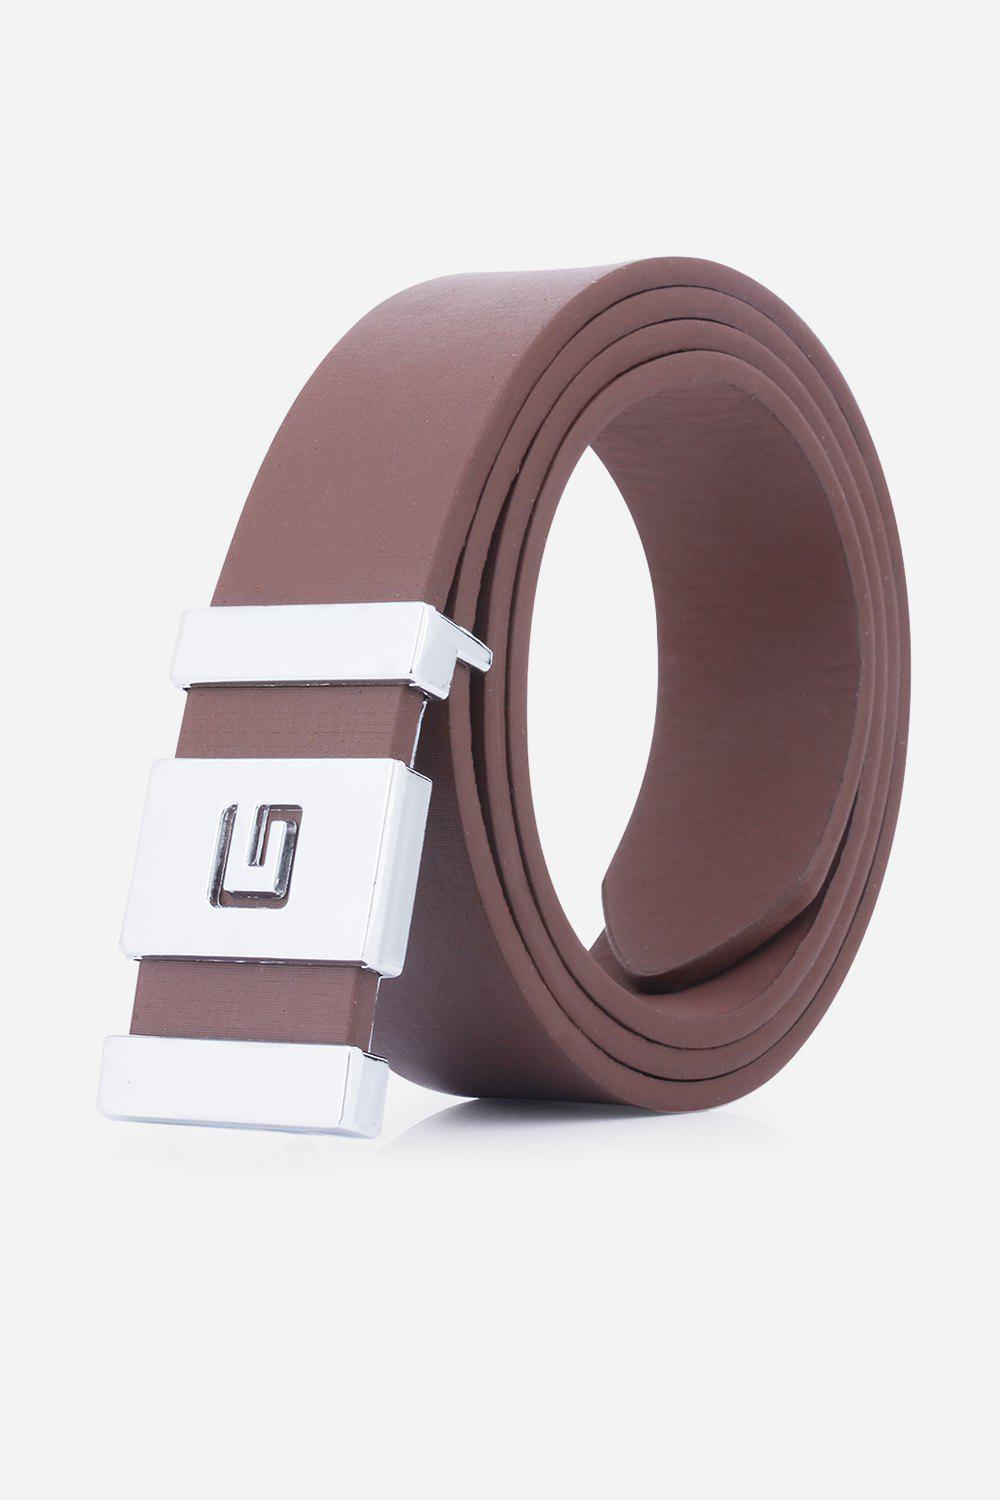 Stylish Letter G and Cut Out Design Buckle Men's Casual PU Belt - COFFEE